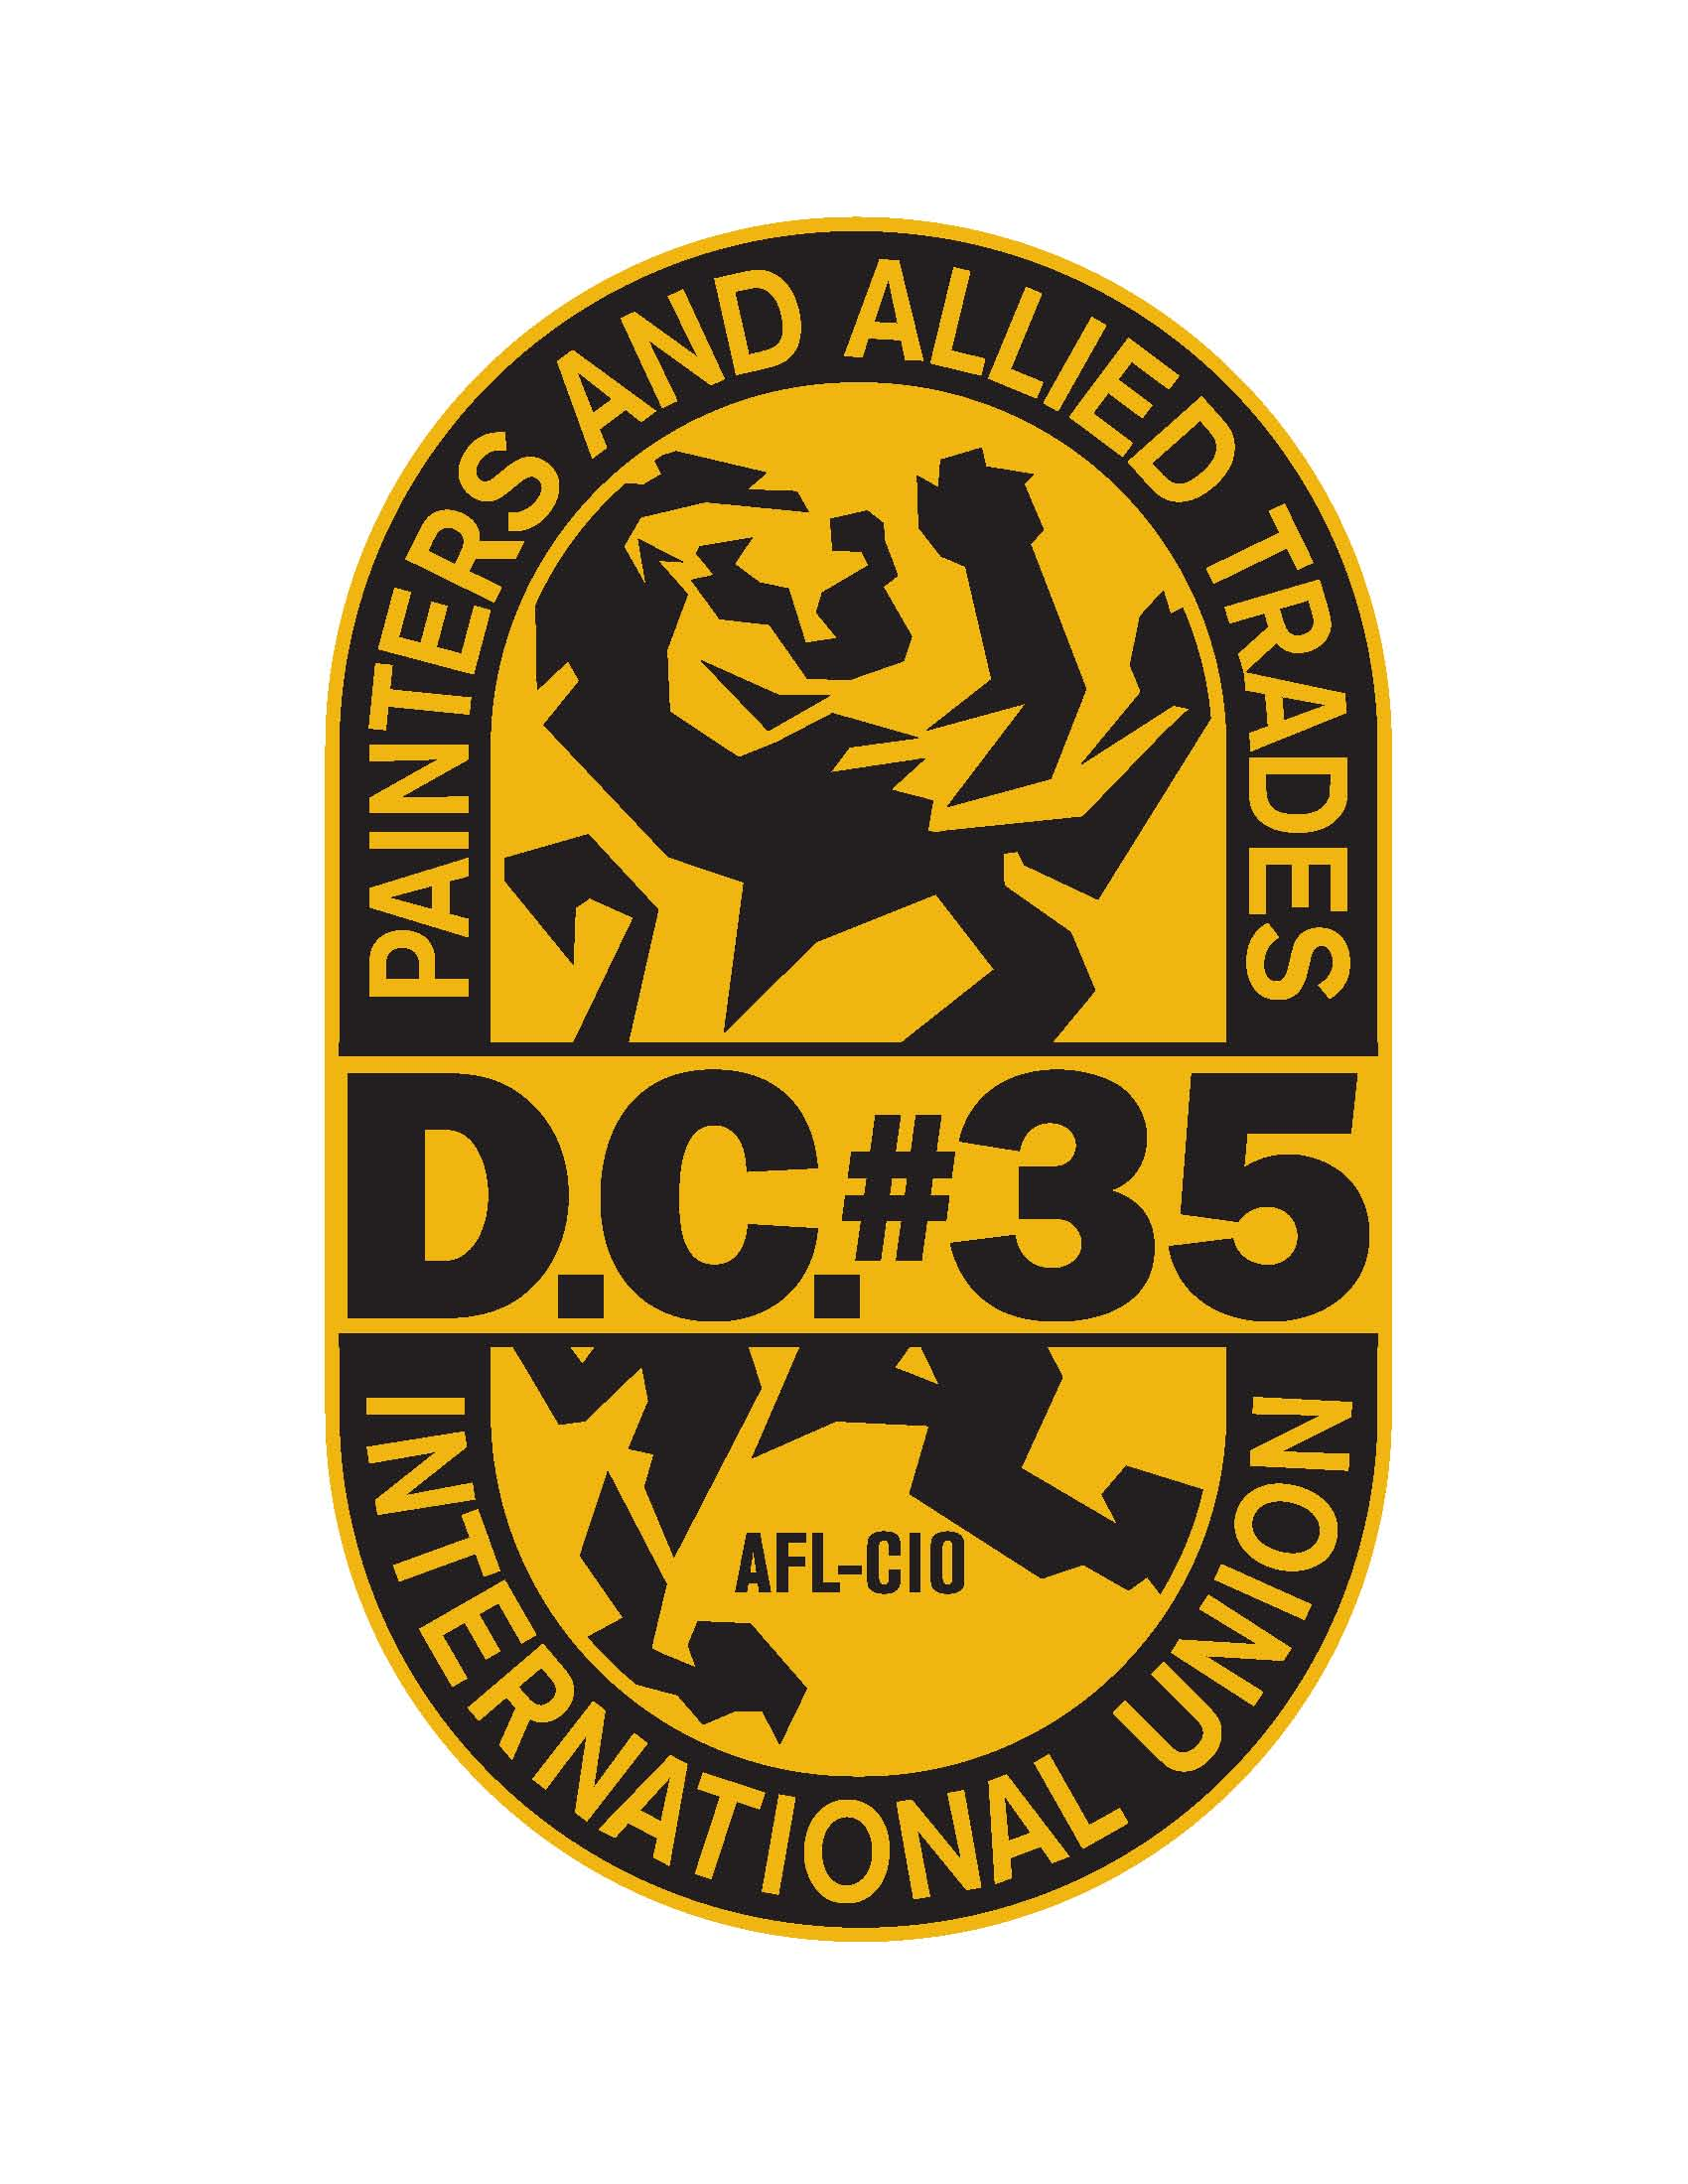 International Union of Painters and Allied Trades, District Council 35